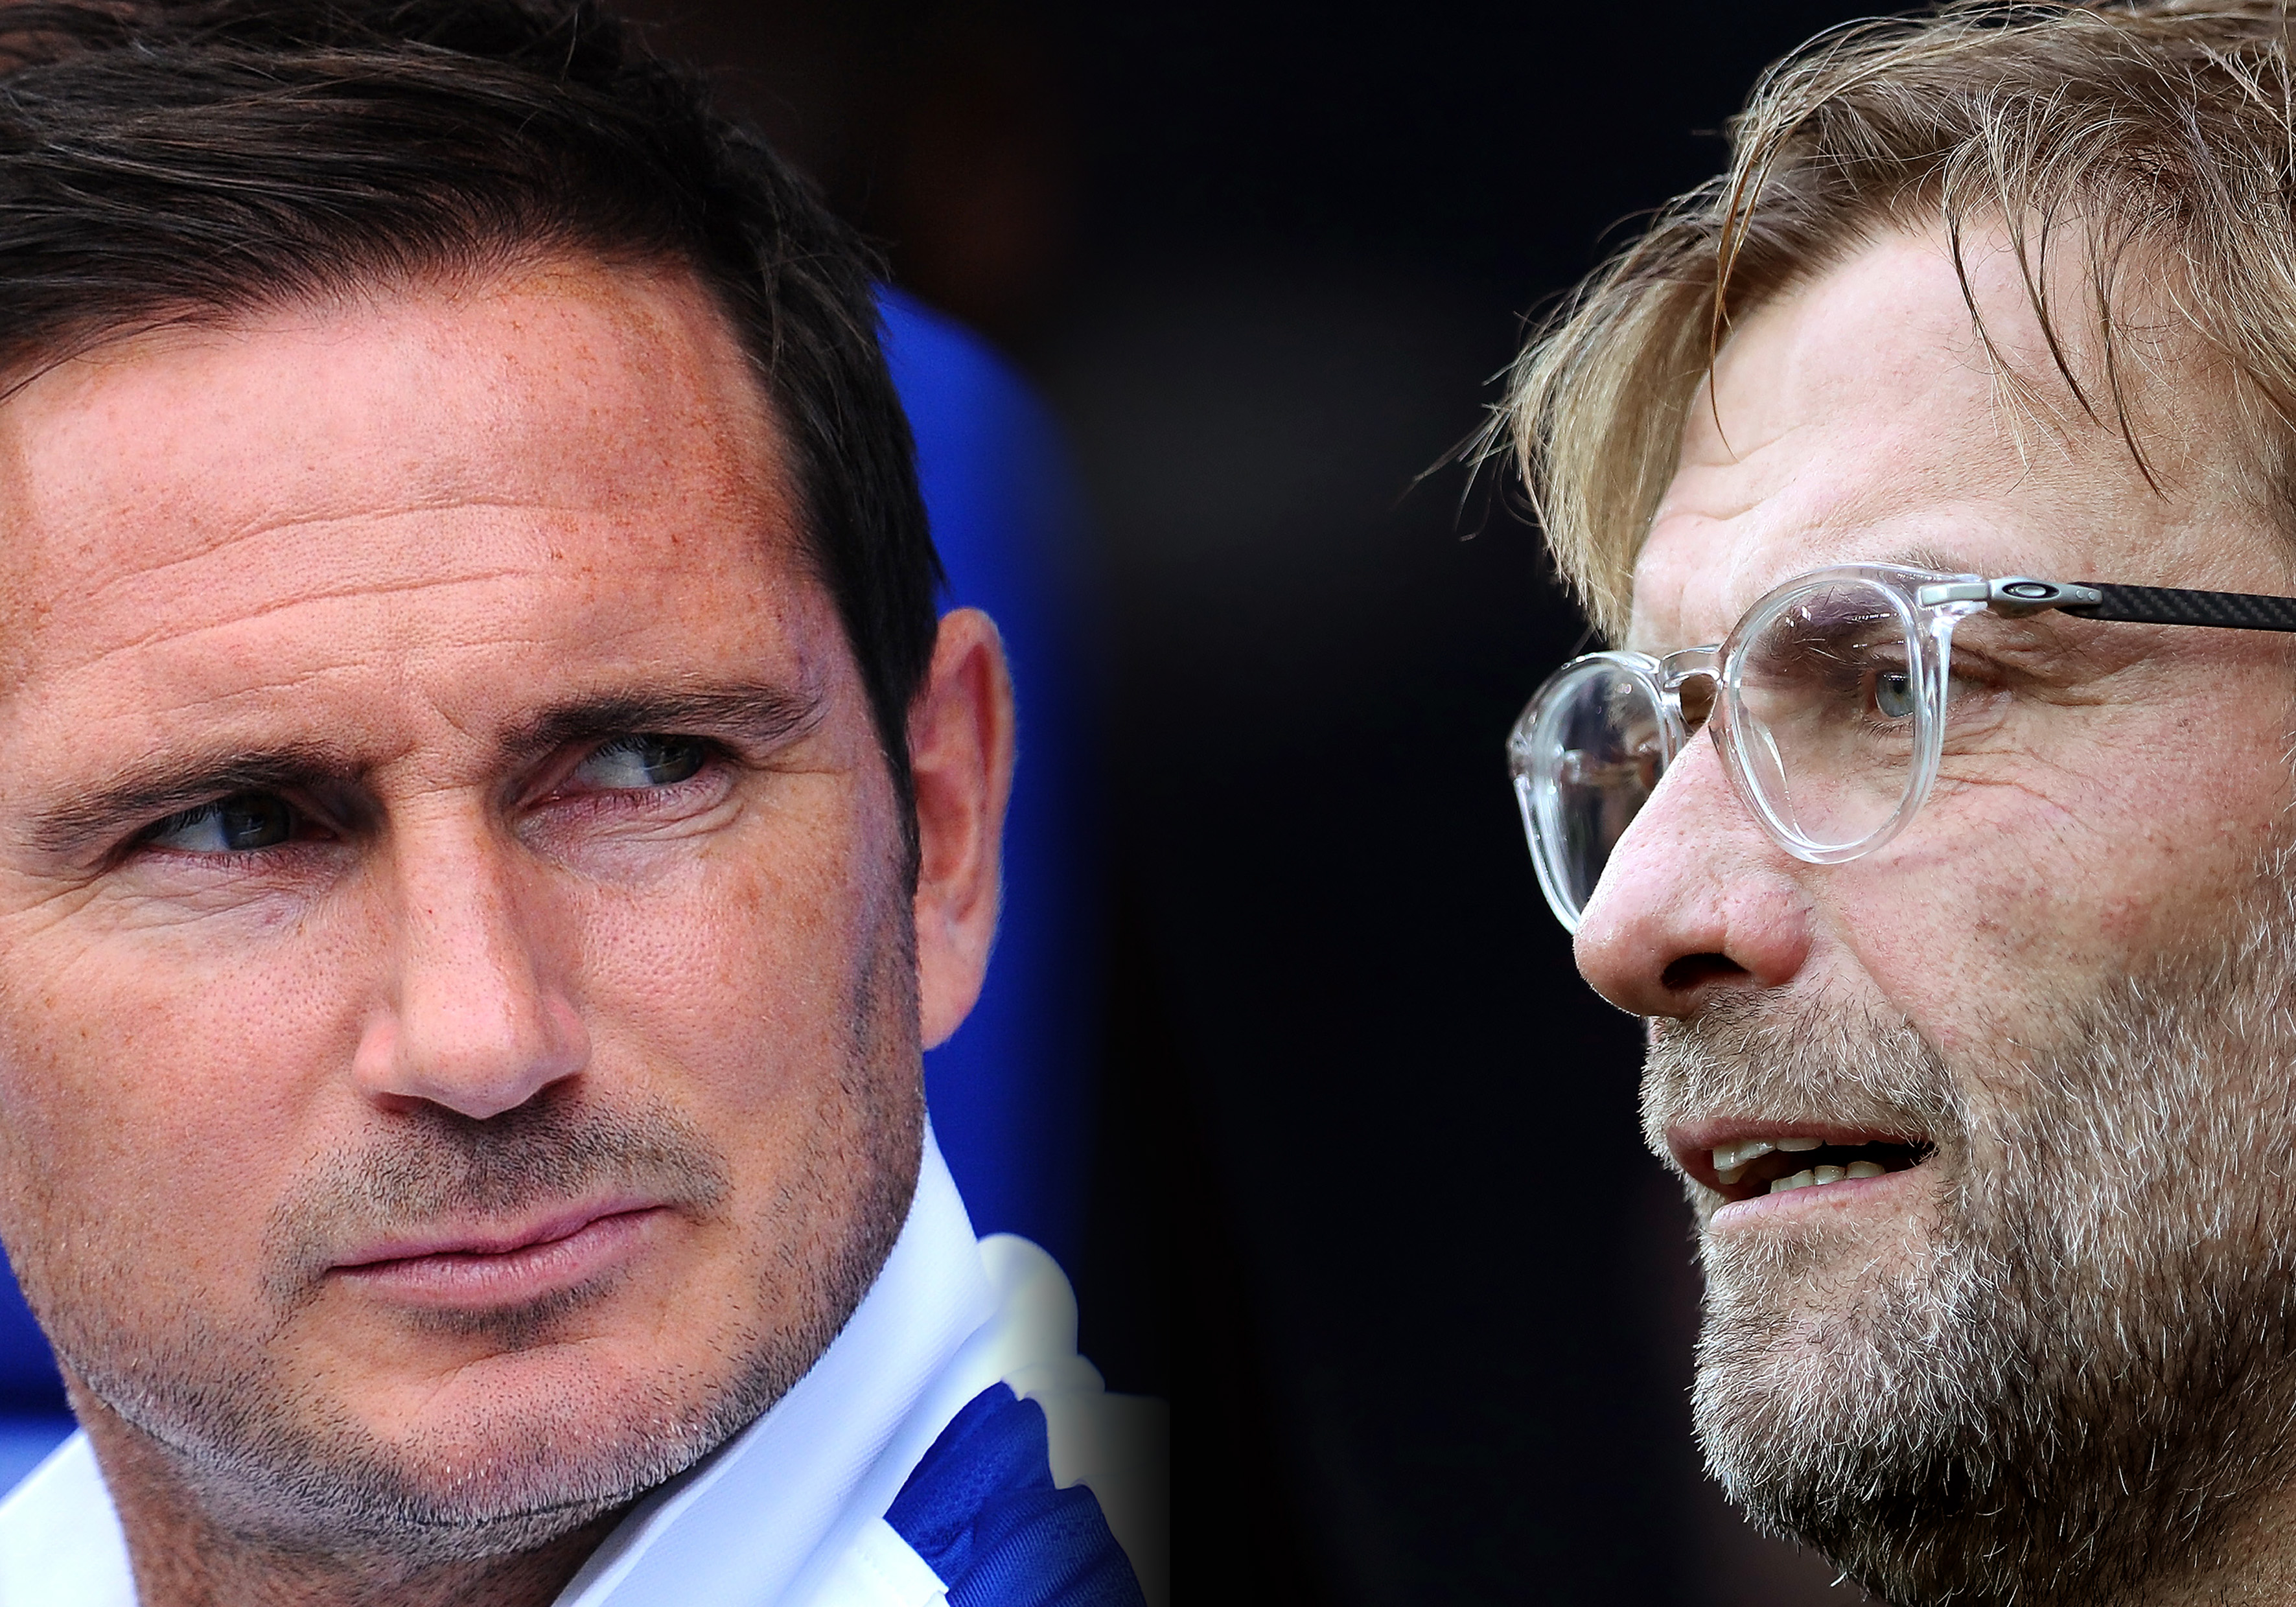 Liverpool vs Chelsea could be an exciting matchup next season. (Photo by Ian MacNicol/Getty Images)